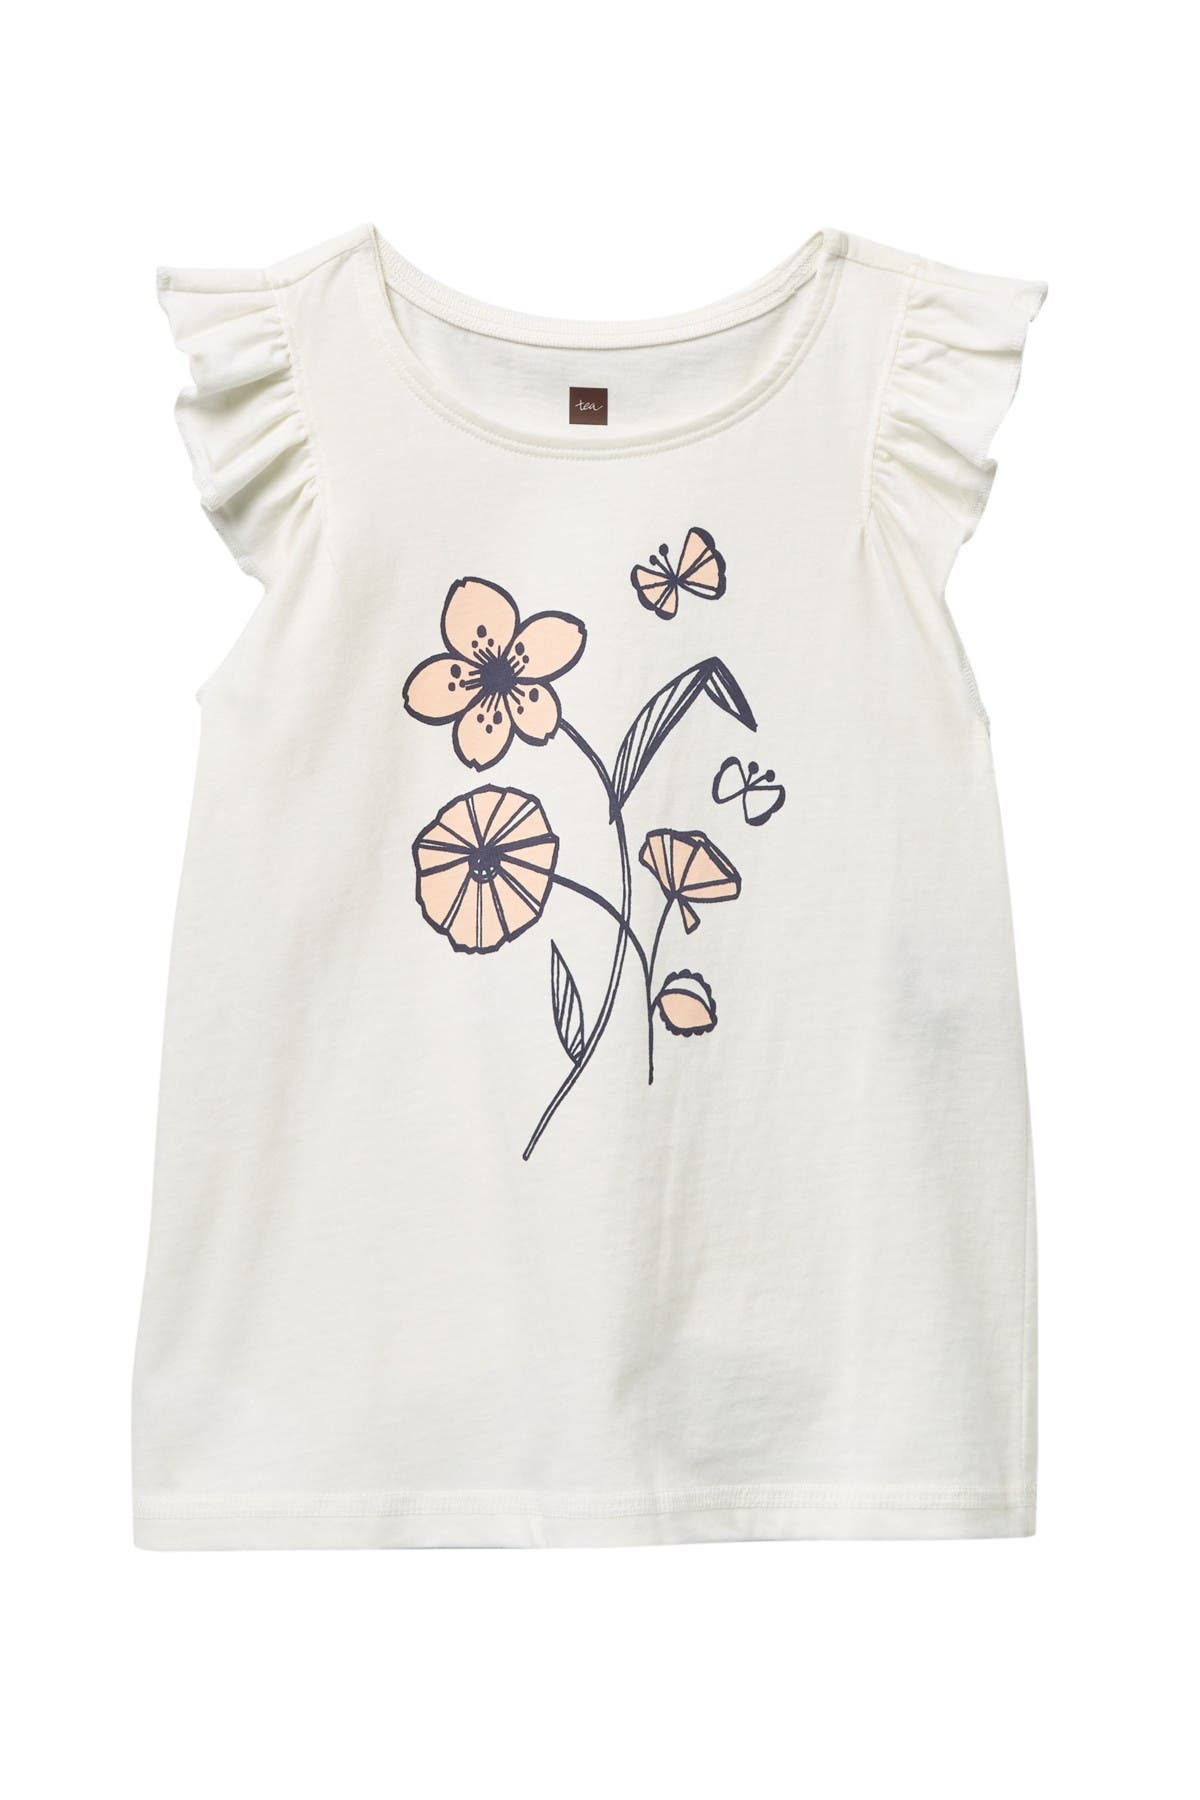 Image of Tea Collection Post Baby Graphic Tee